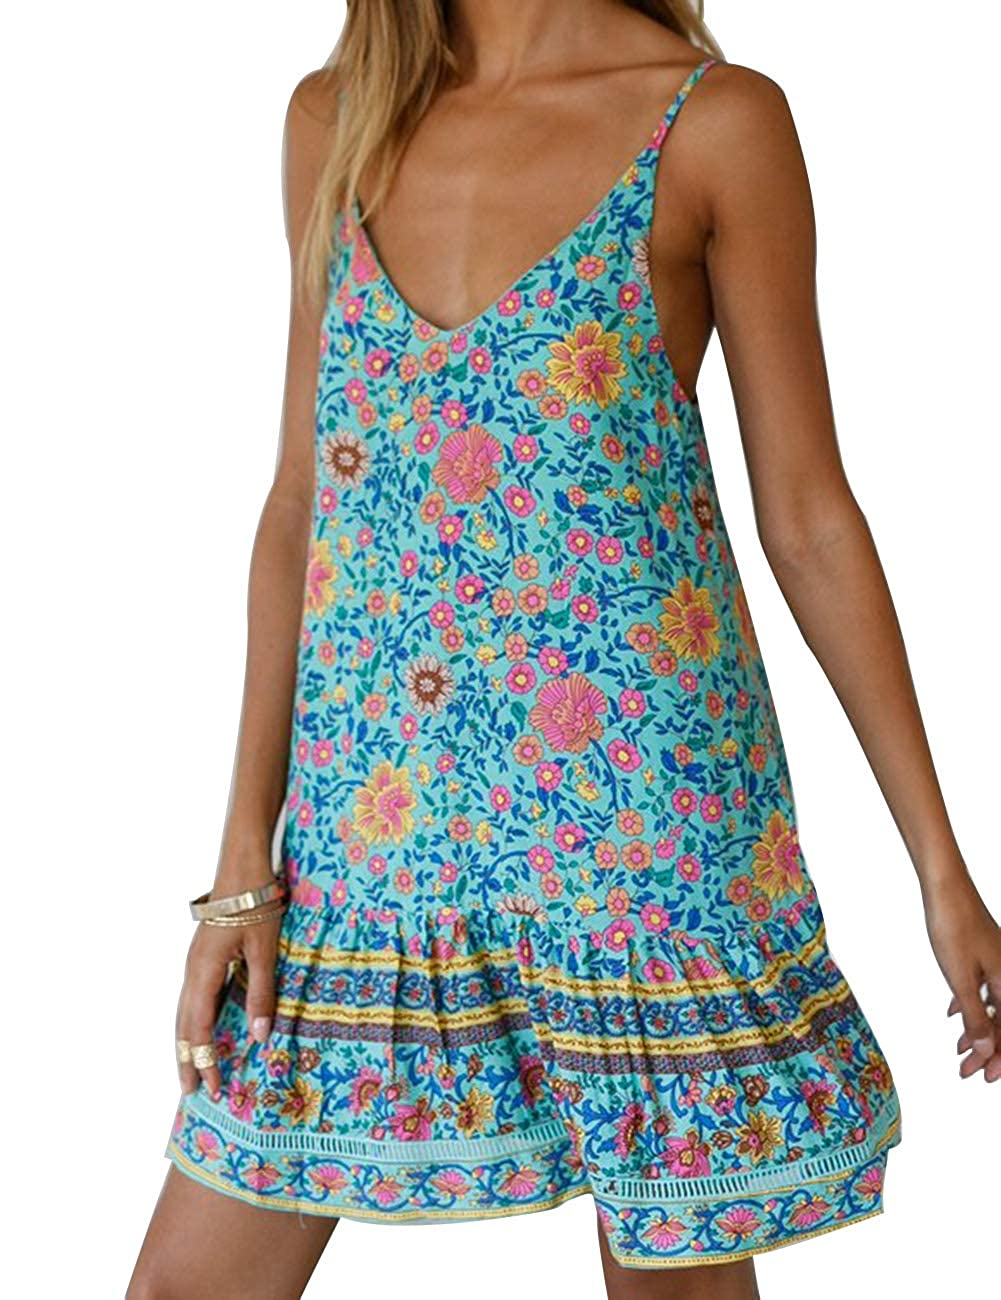 Womens Floral Print Pleated Adjustable Spaghetti Strap Rompers Cute Ruffled Summer Short Jumpsuit Playsuit